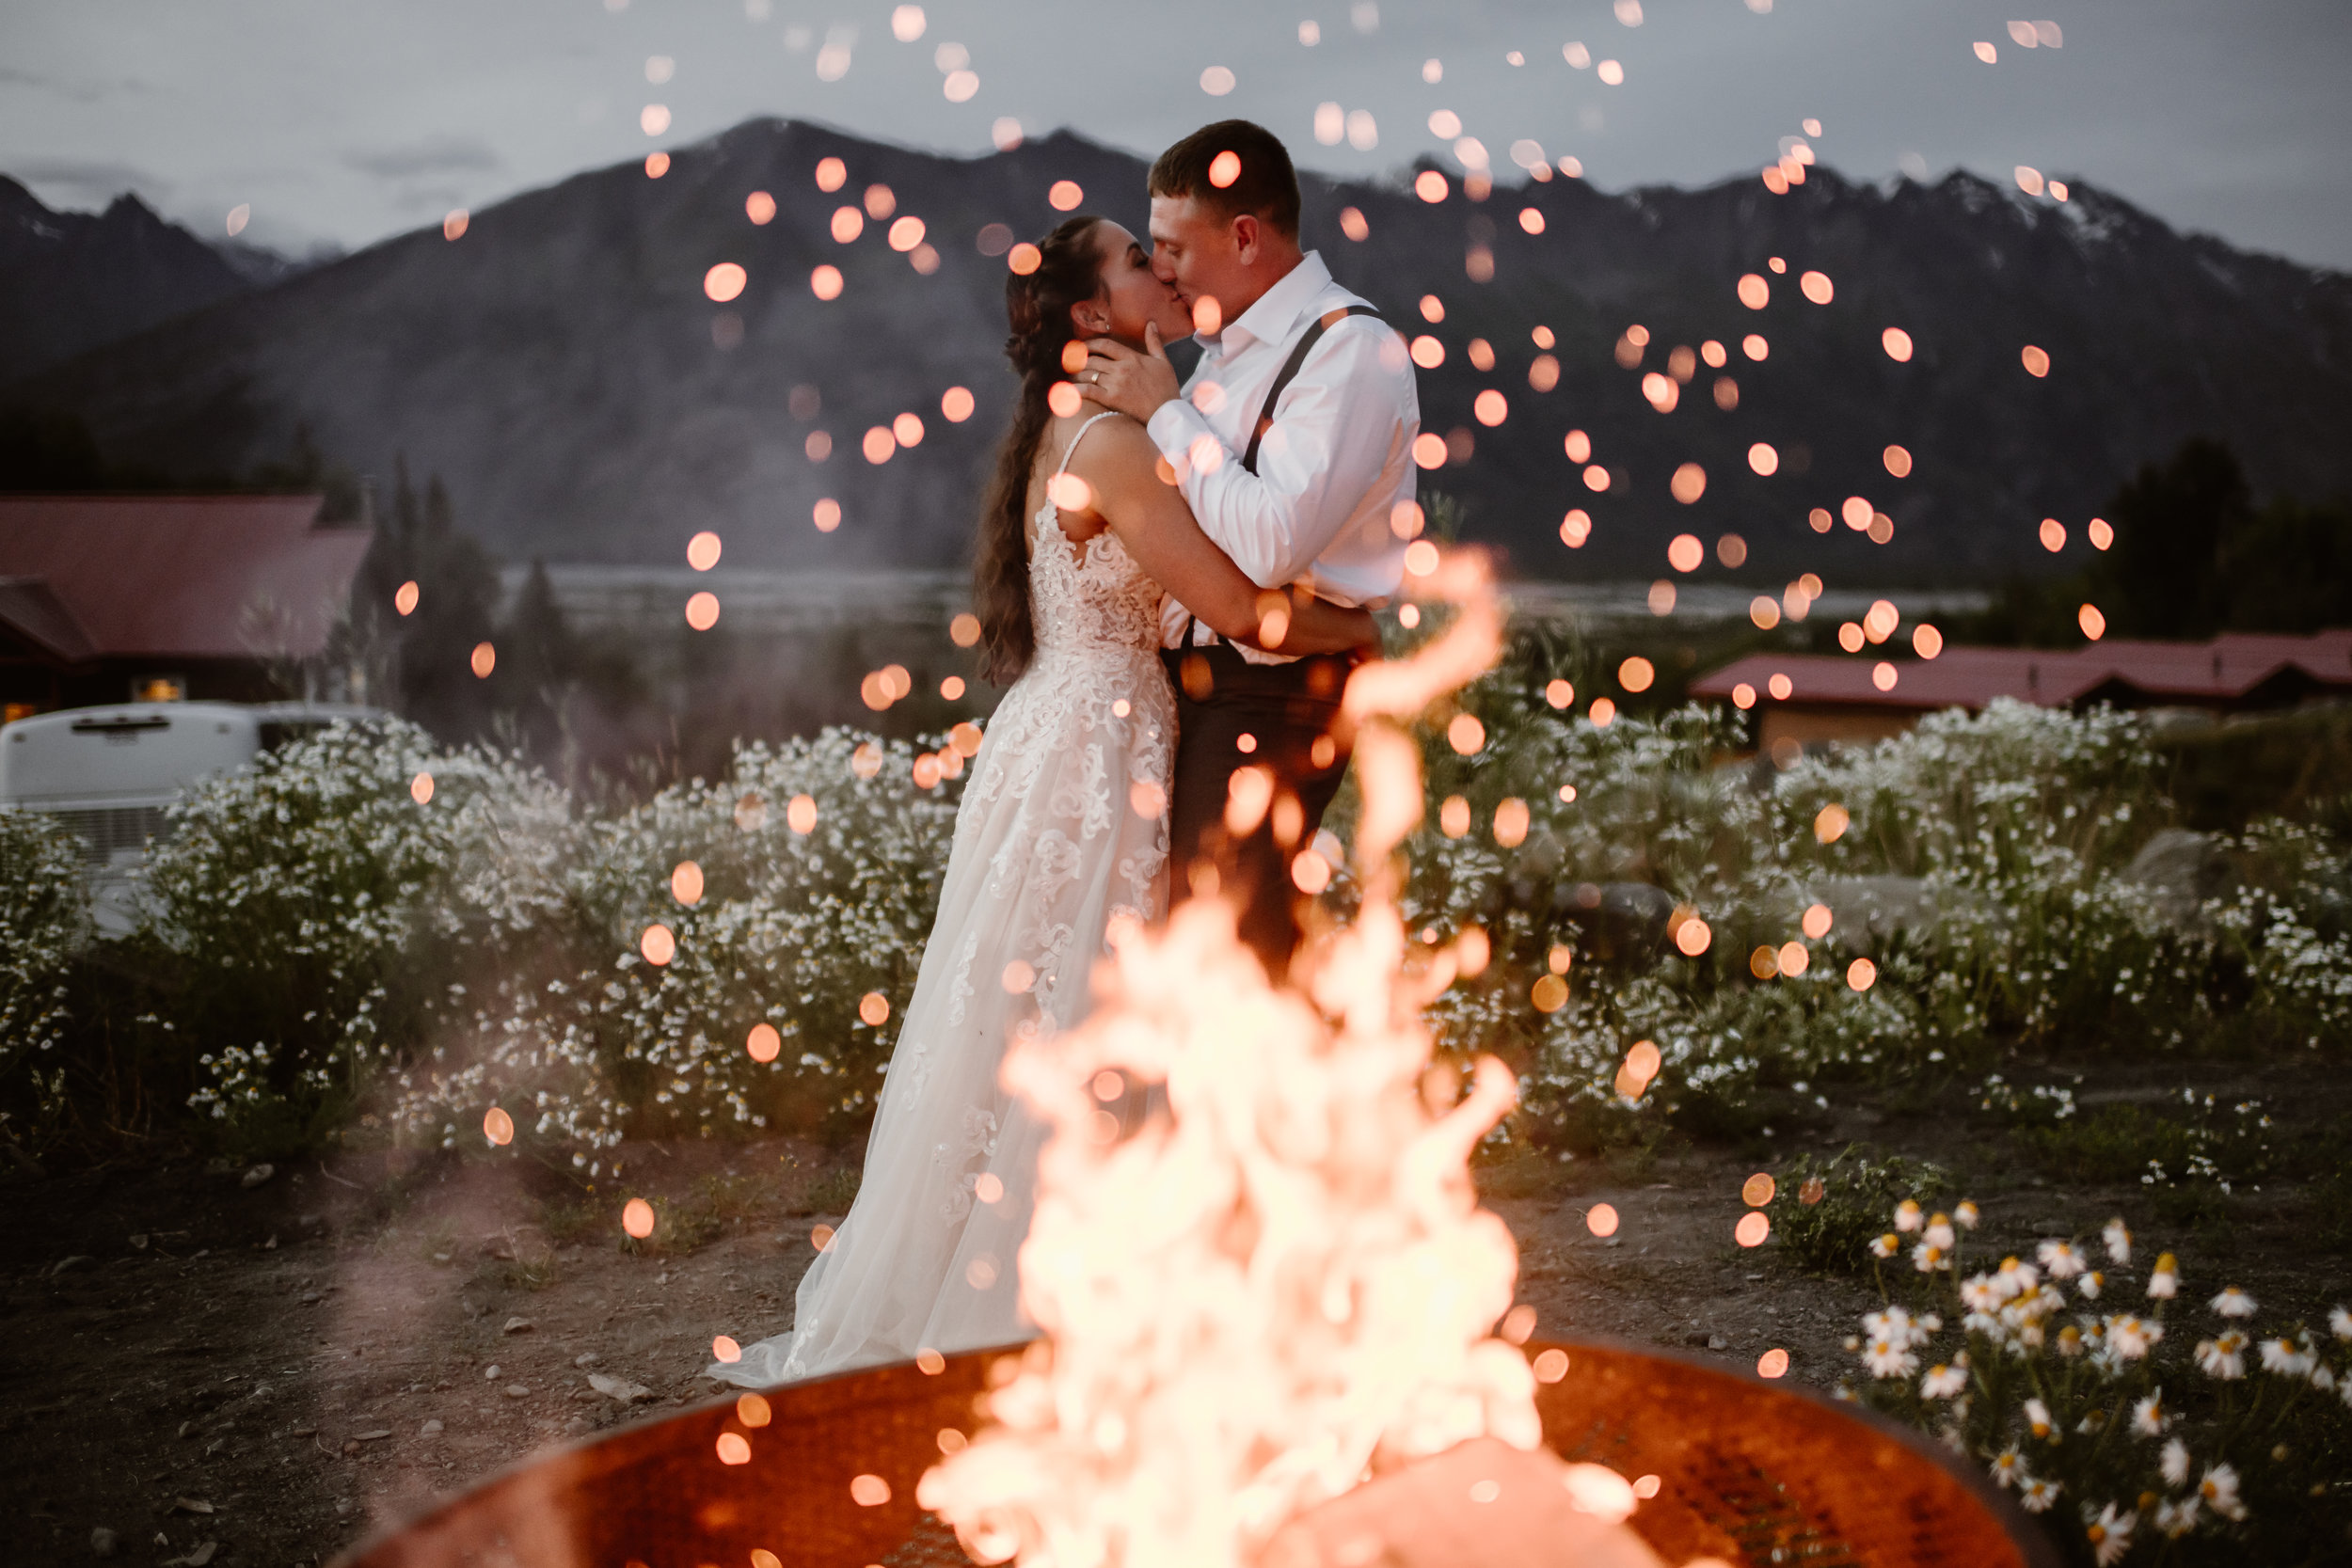 In the midst of a sparking campfire with enormous mountains in the background, Jordyn and Connor kiss at the finale of their first dance and the end of their reception after eloping. Jordyn and Connor's Alaska helicopter elopement story was captured by Adventure Instead, an elopement wedding photographer.